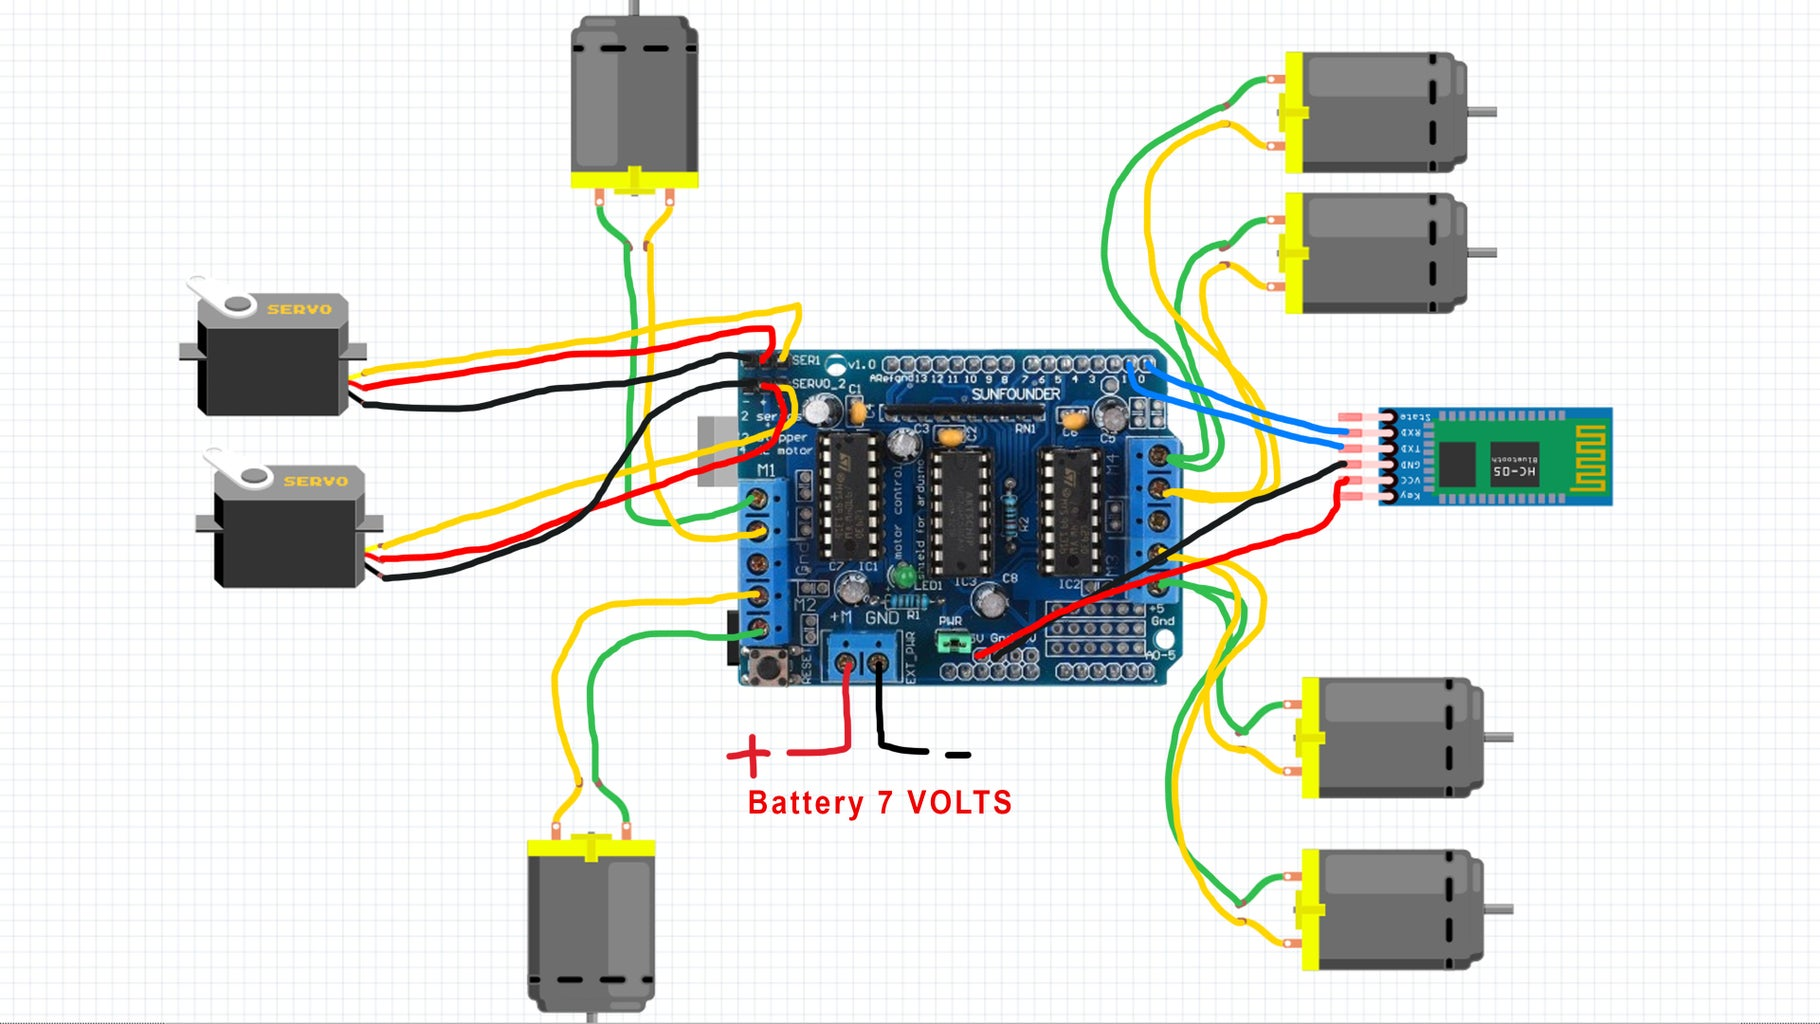 Wiring and Circuit